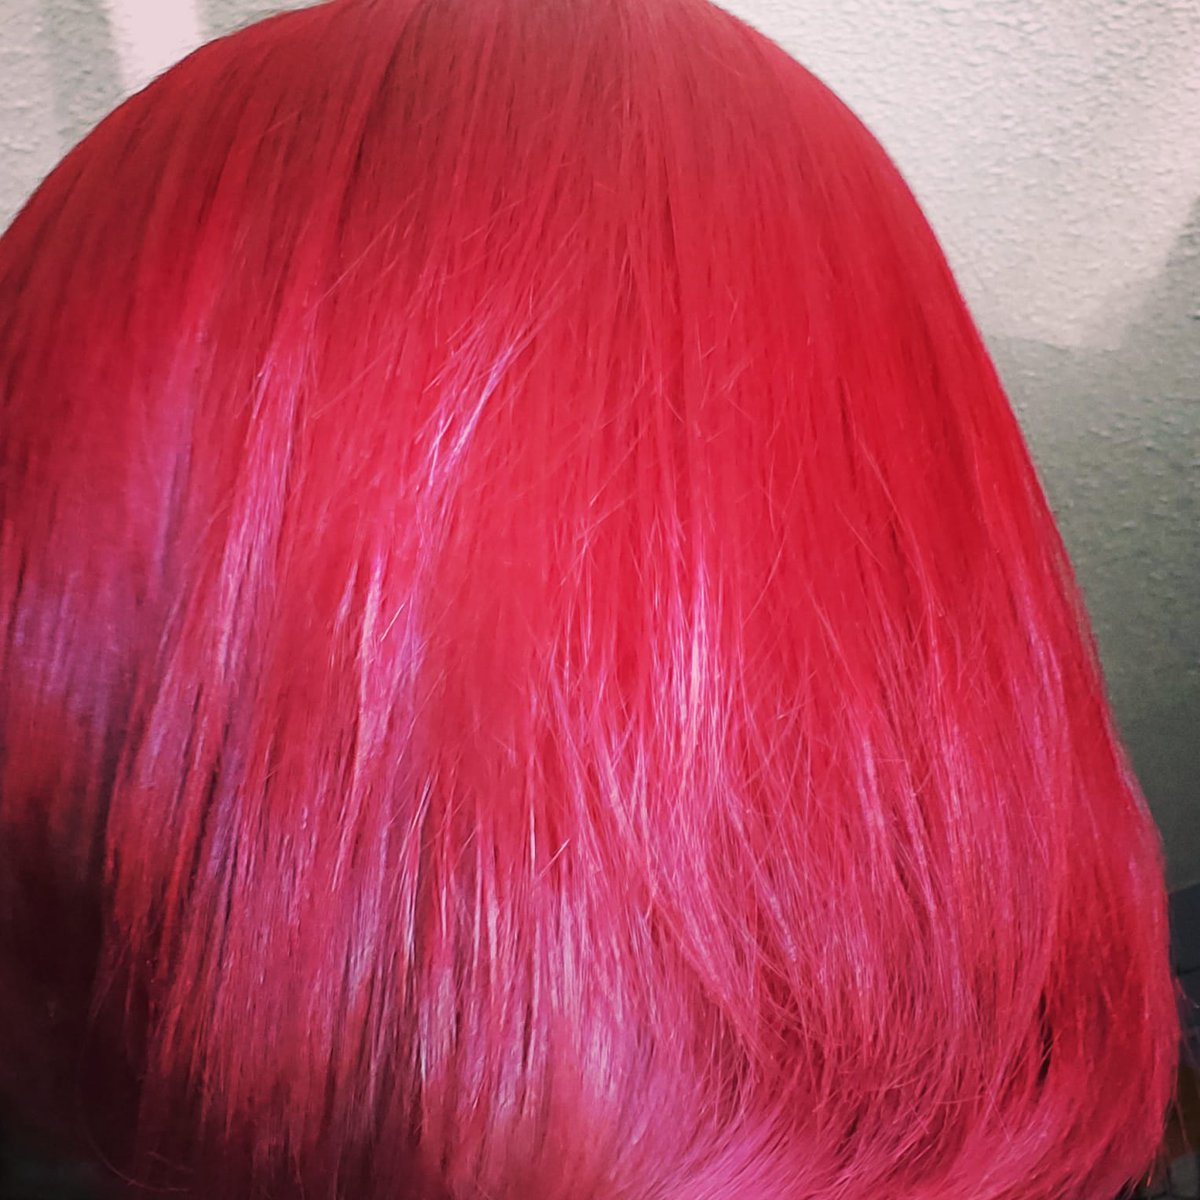 So 3 yrs after a stylist totally fried my hair its finally healthy enough to go #Pink again .... Did it myself .... what's everyone think? #pinkhair